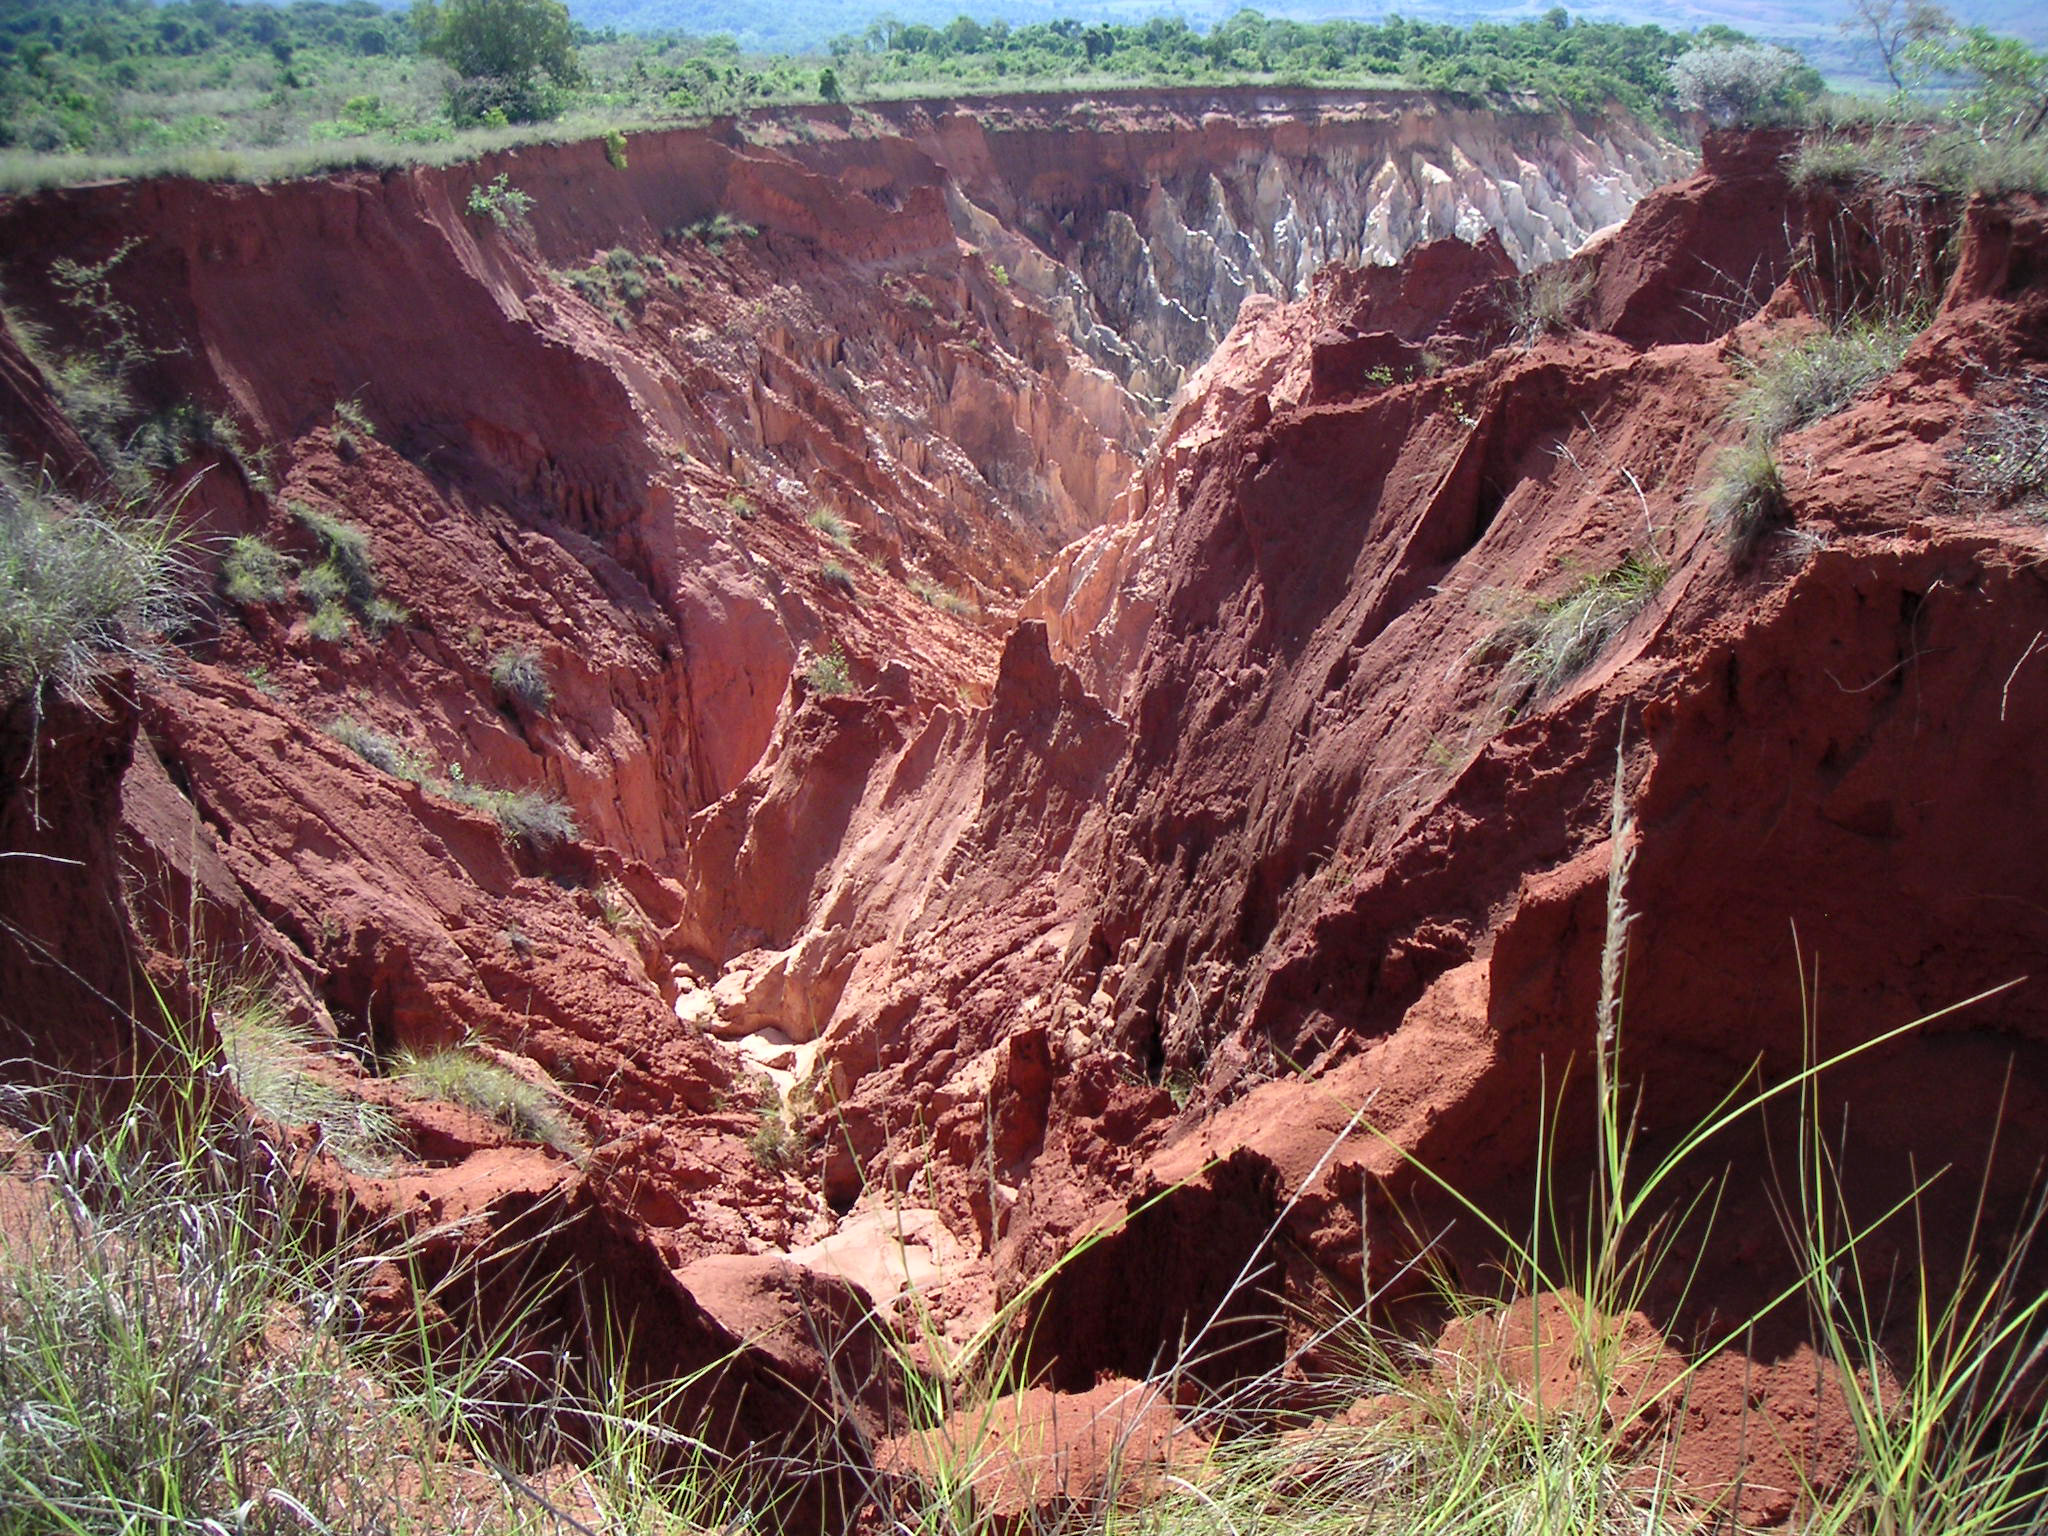 A vast, red soil gully caused by erosion